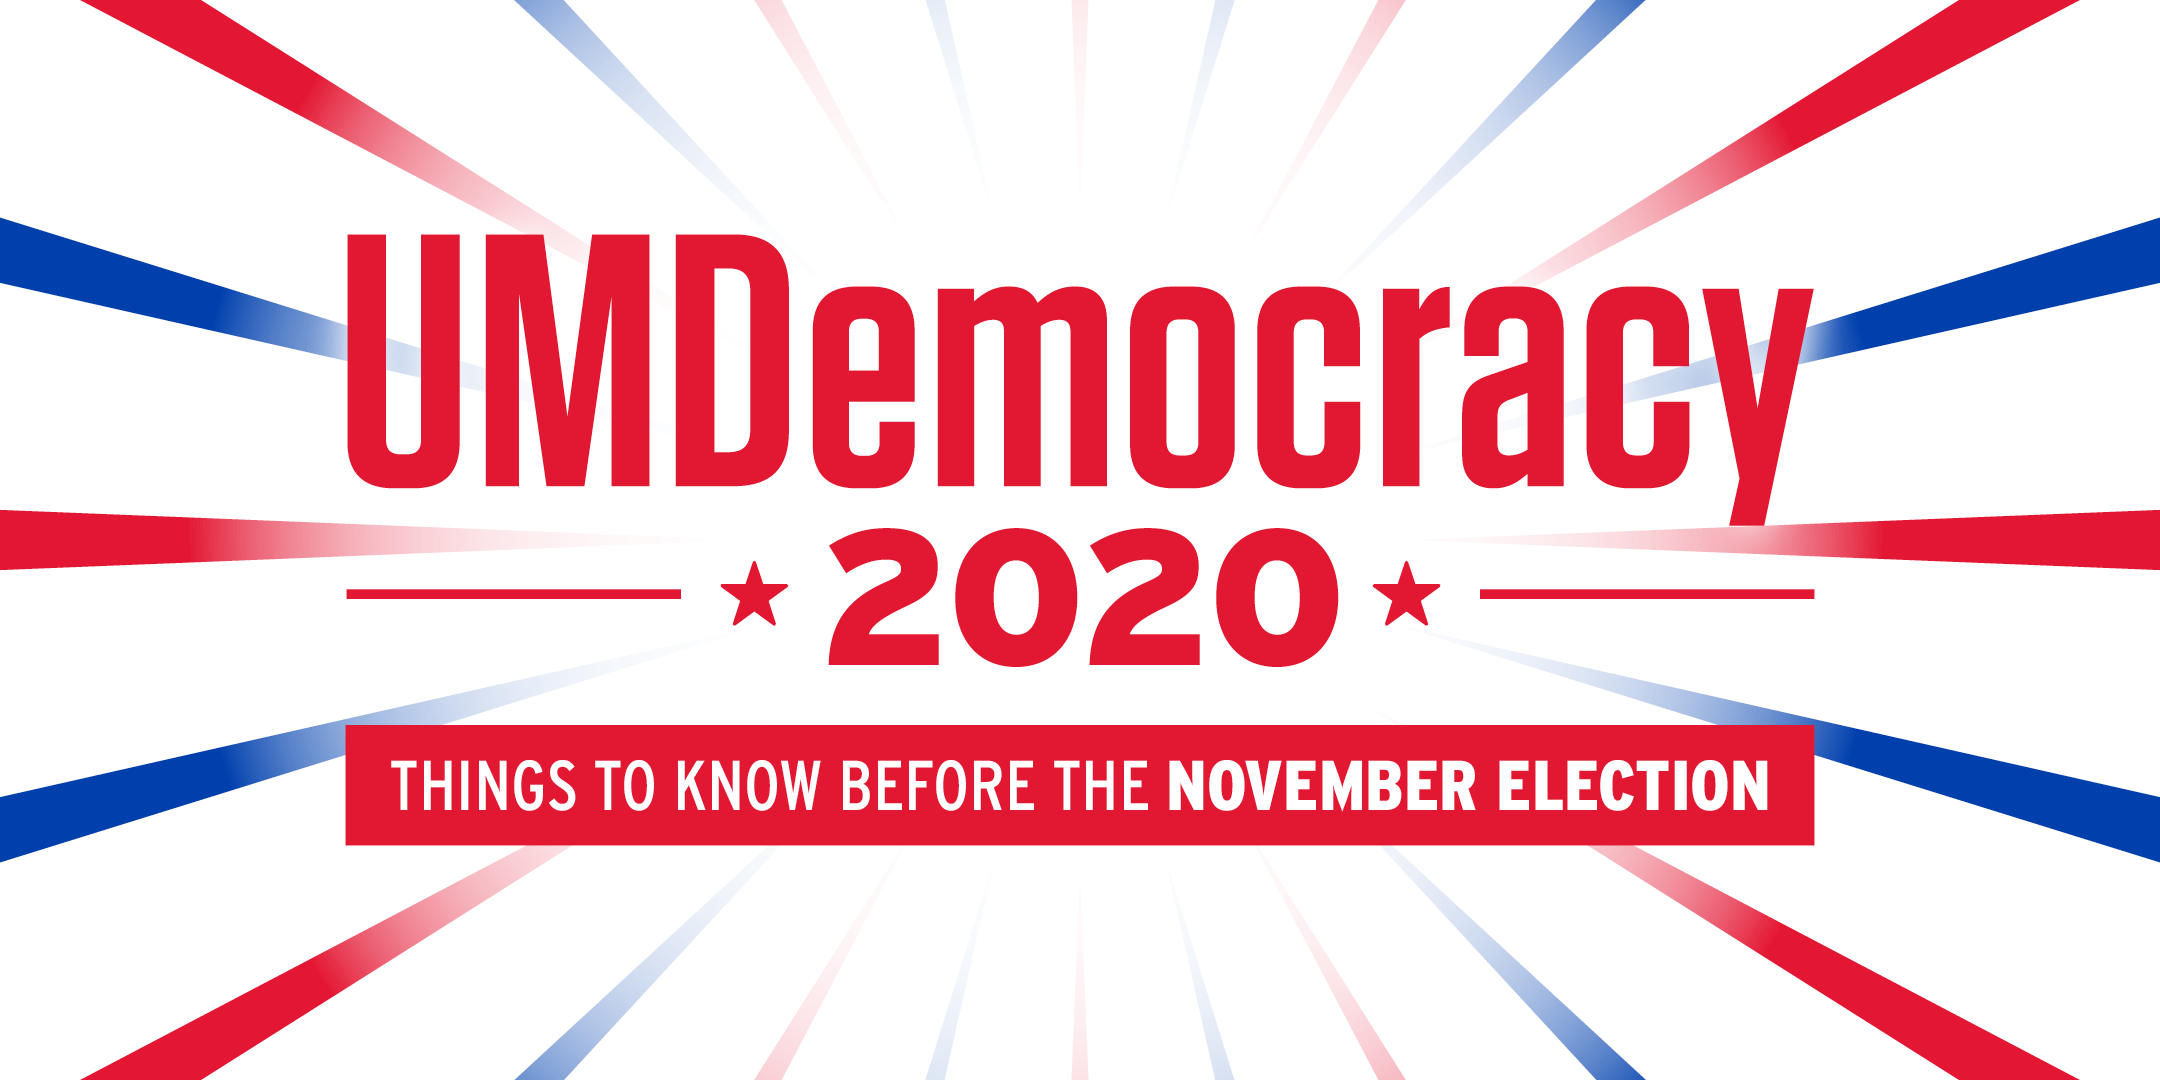 UMDemocracy 2020: Things To Know Before The November Election